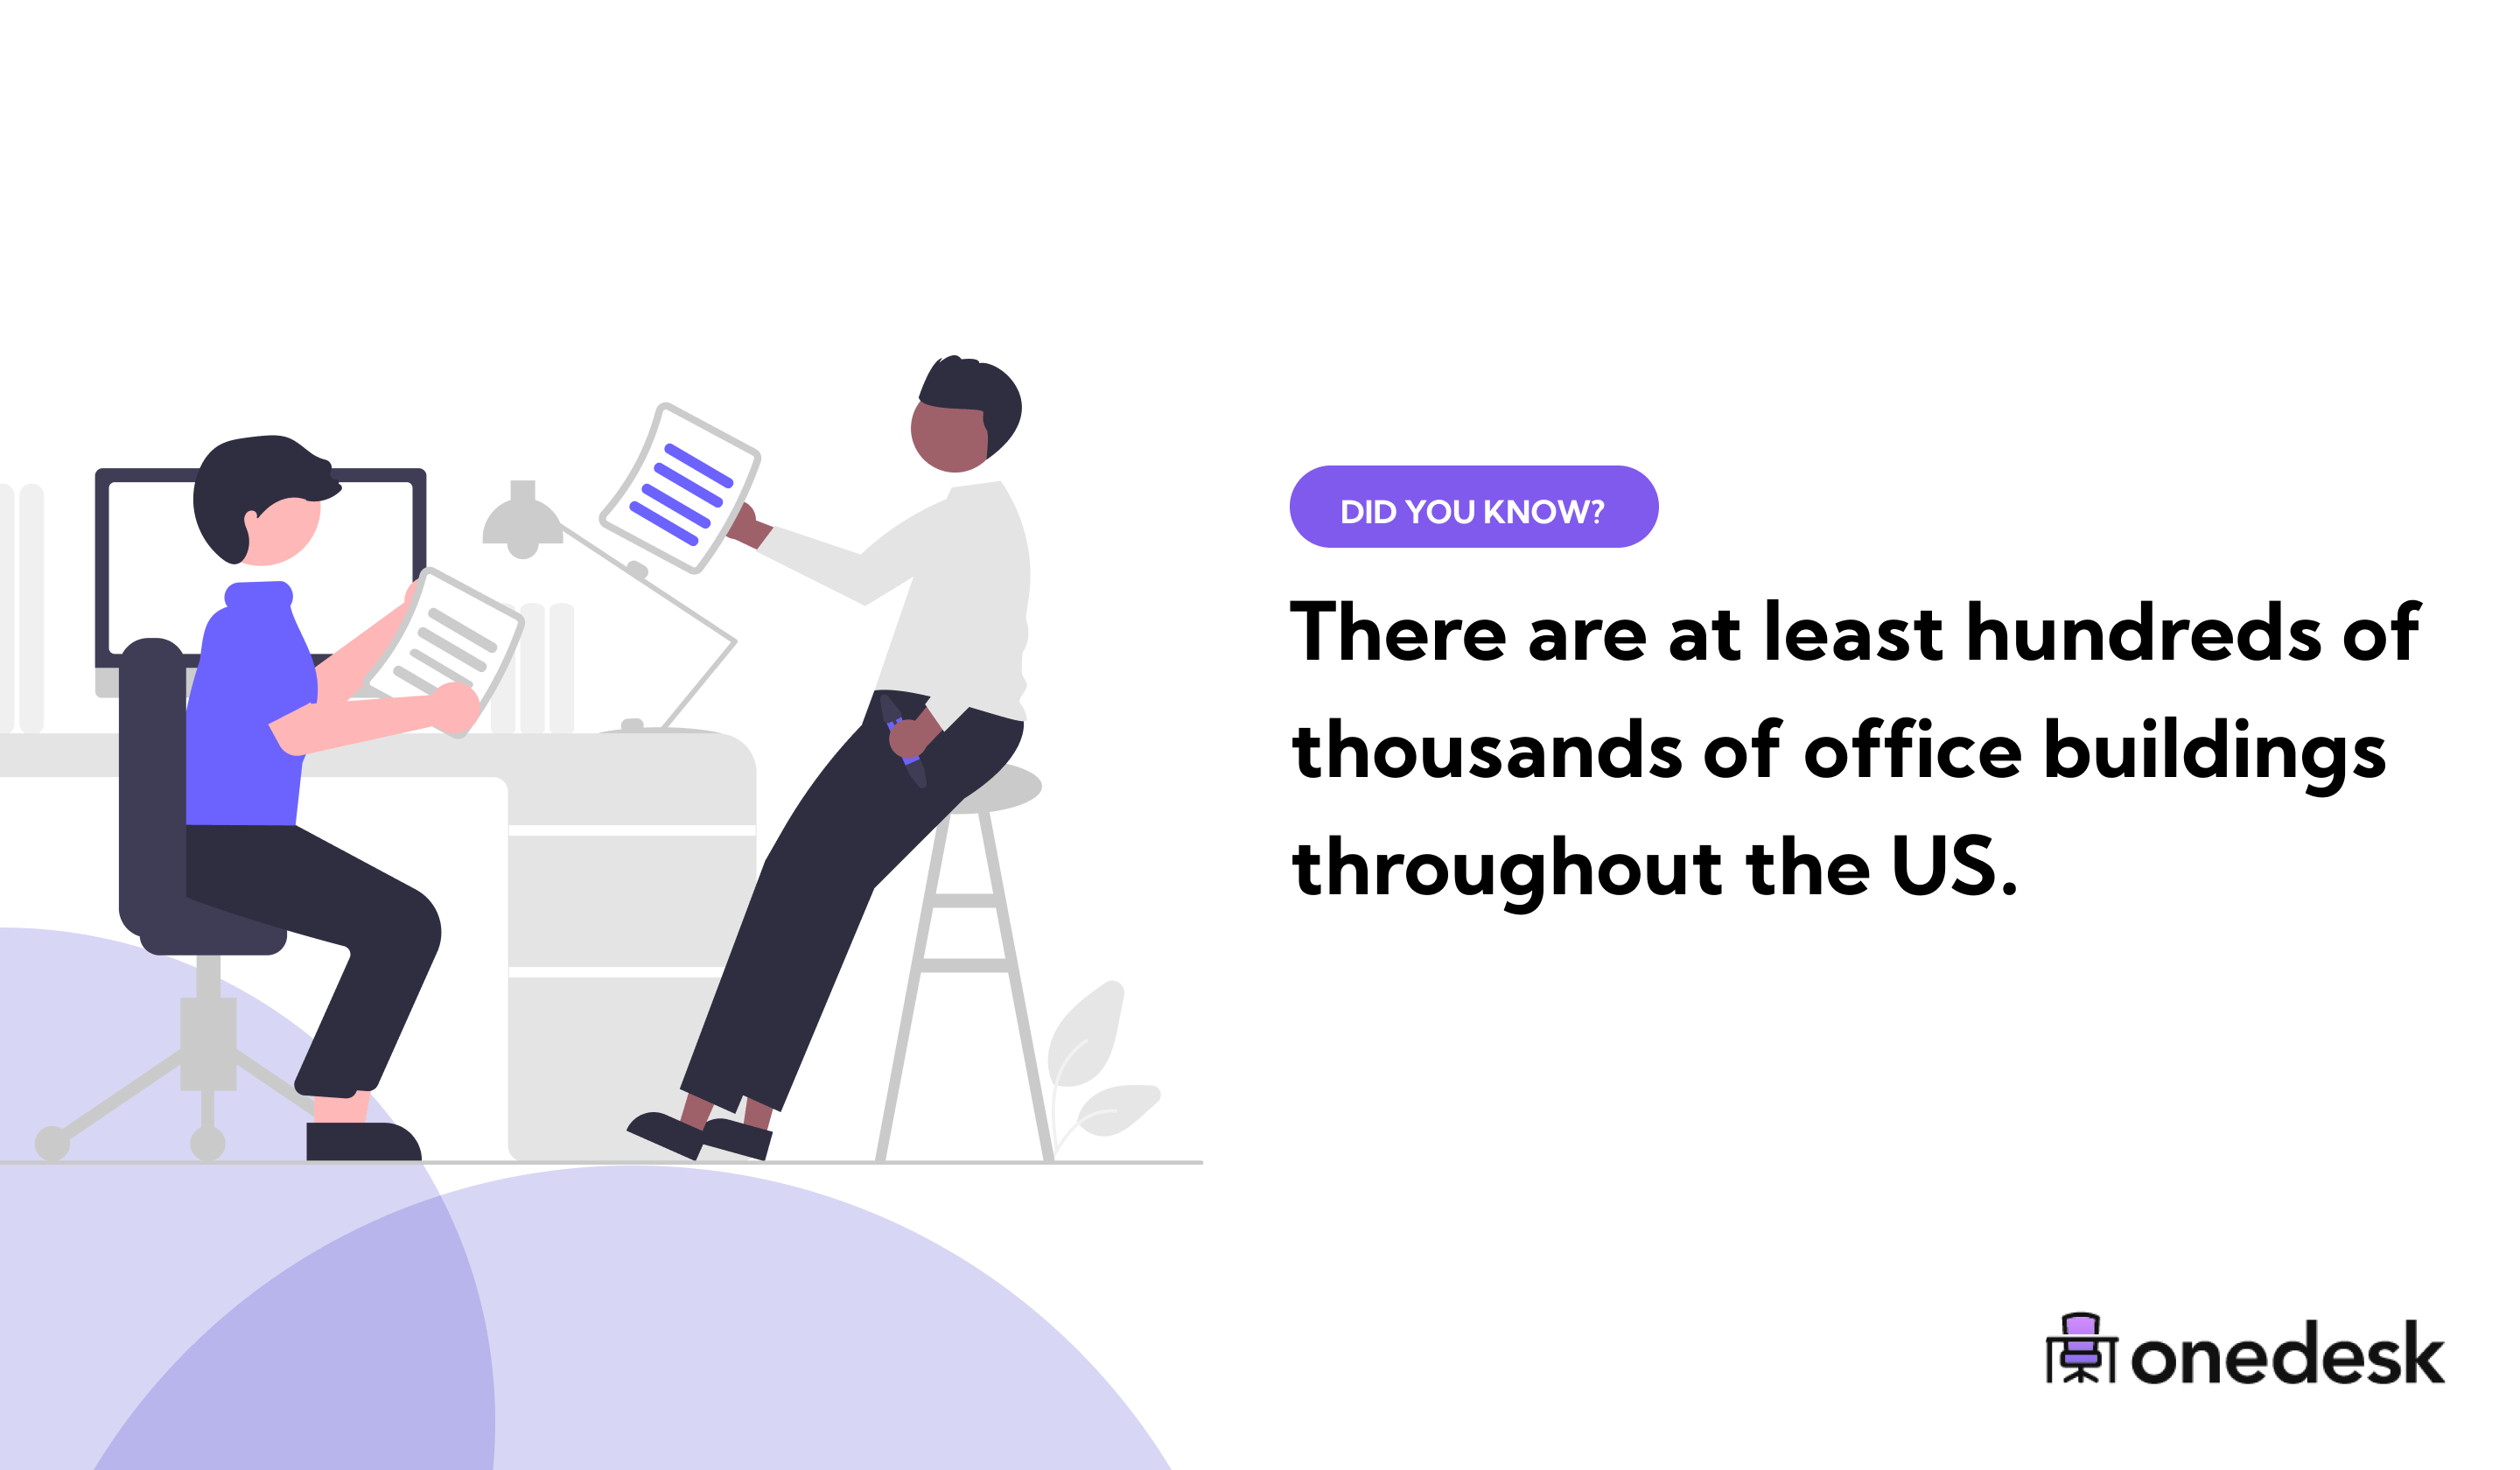 Number of Office Buildings in the US